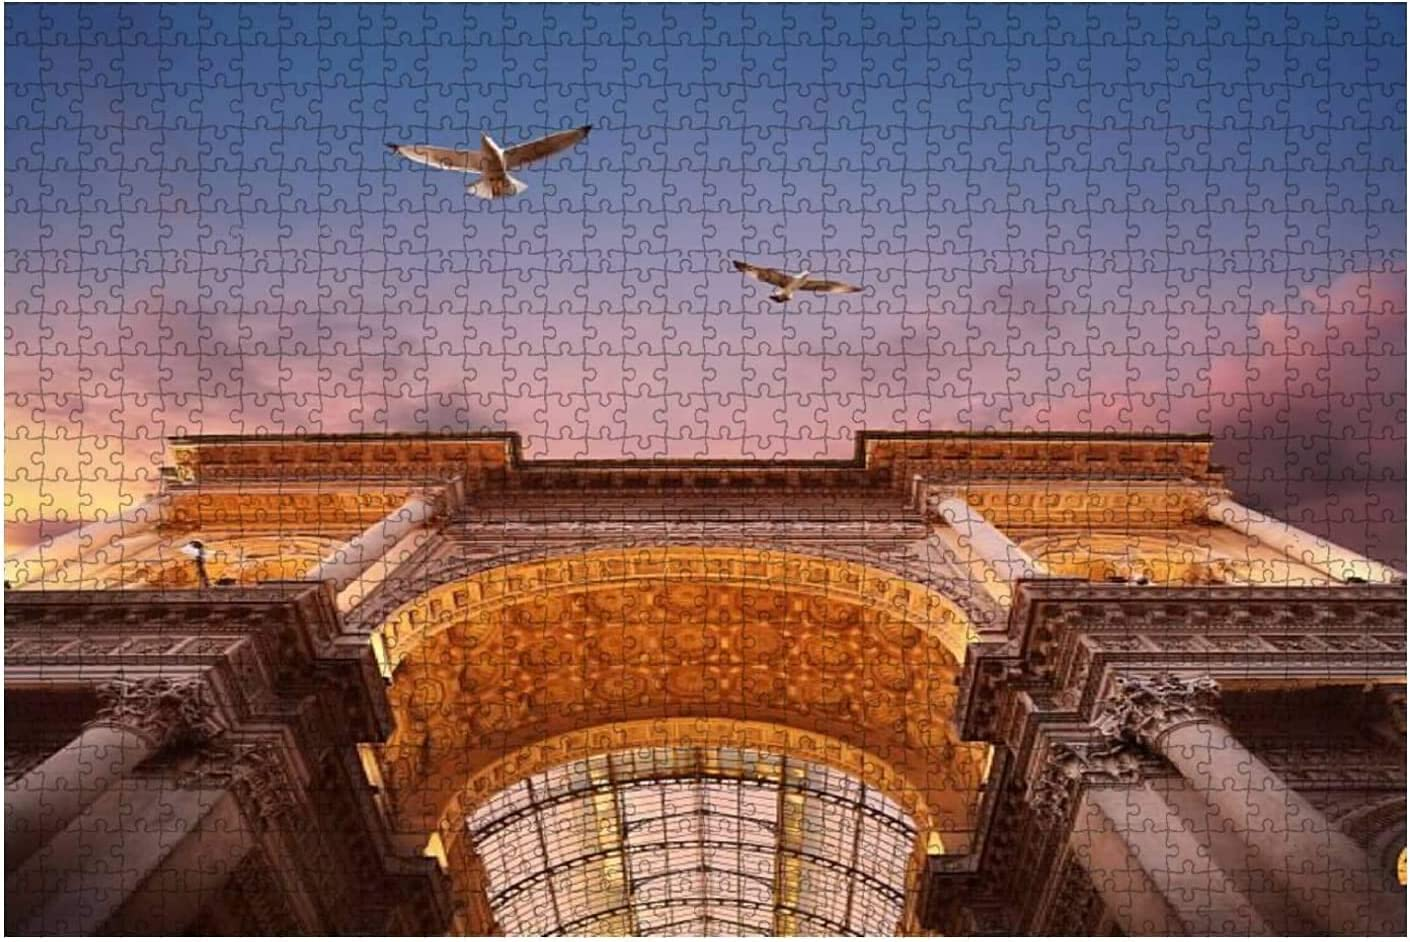 1000 Pieces-Galleria Vittorio Emanuele DIY Puzzle Jigsaw Outlet ☆ Free Shipping Max 58% OFF Wooden